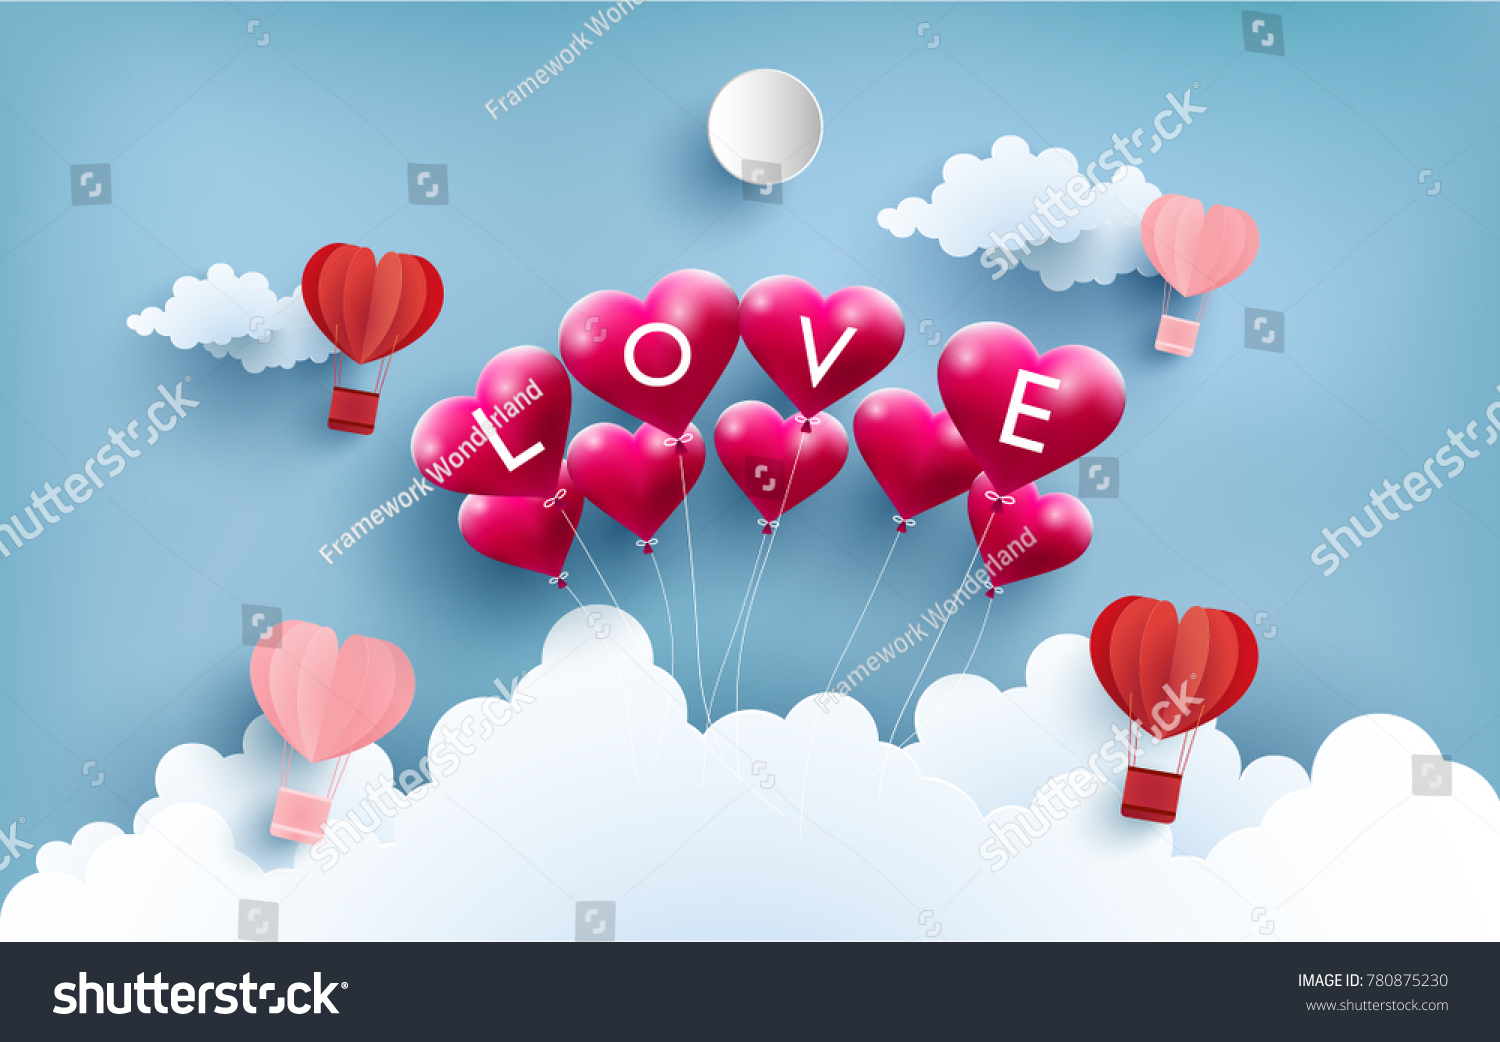 Illustration love symbol art design paper stock vector 780875230 illustration of love symbol with art design and paper craft there are balloons and hot jeuxipadfo Images